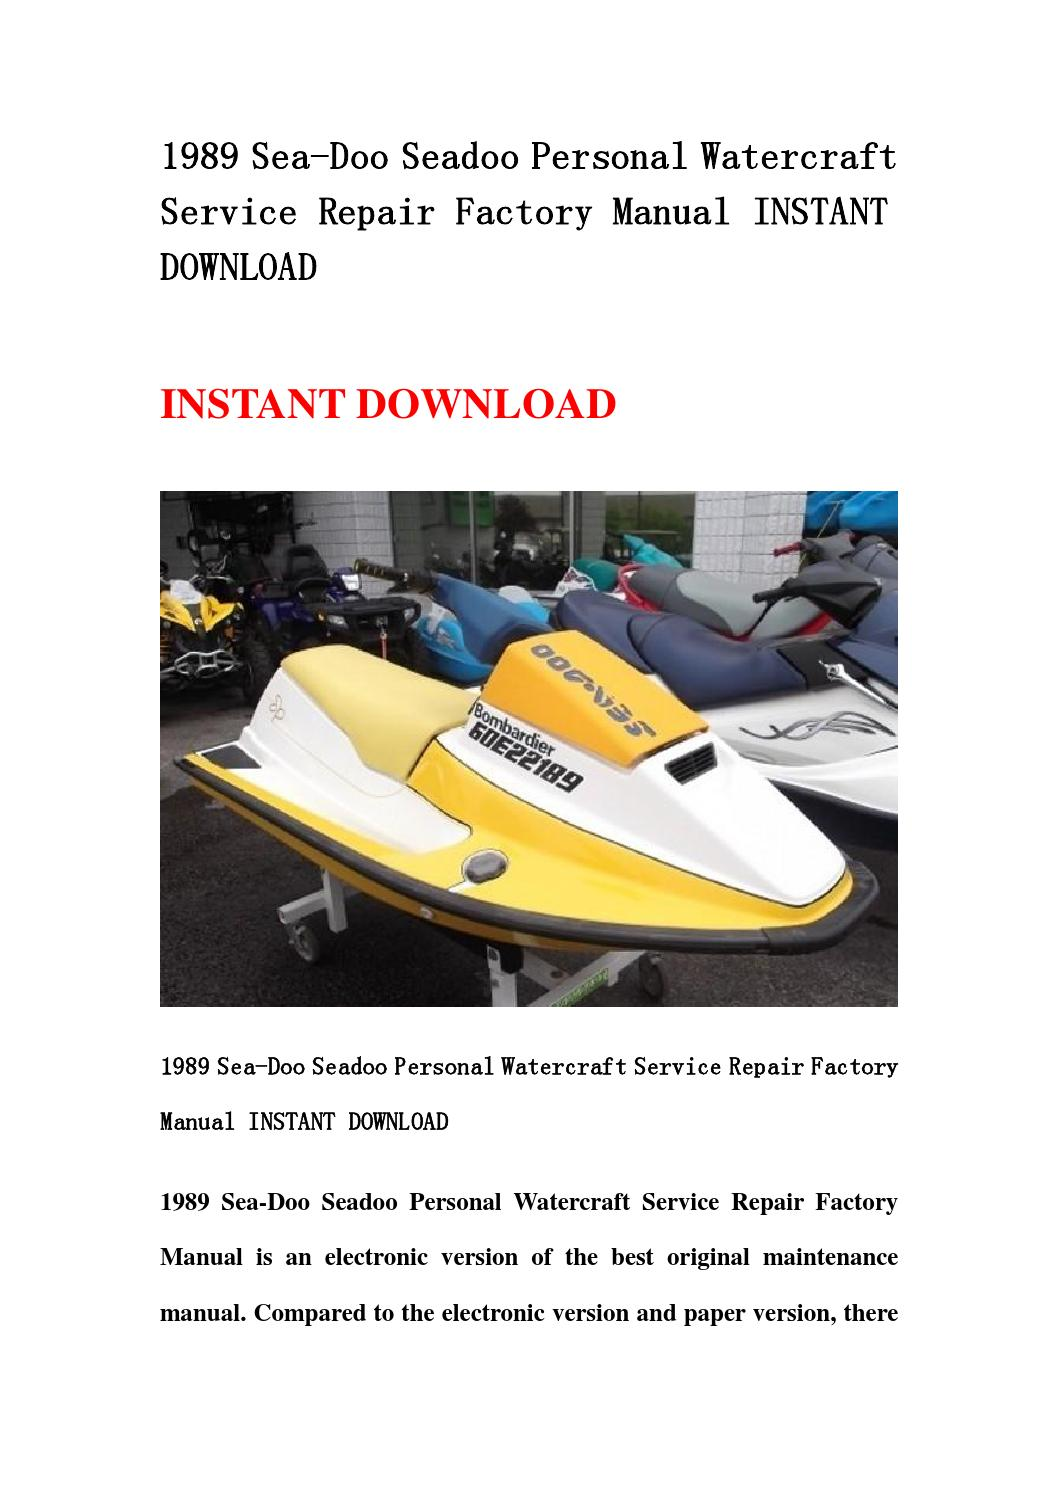 1989 sea doo seadoo personal watercraft service repair factory manual  instant download by hews - issuu